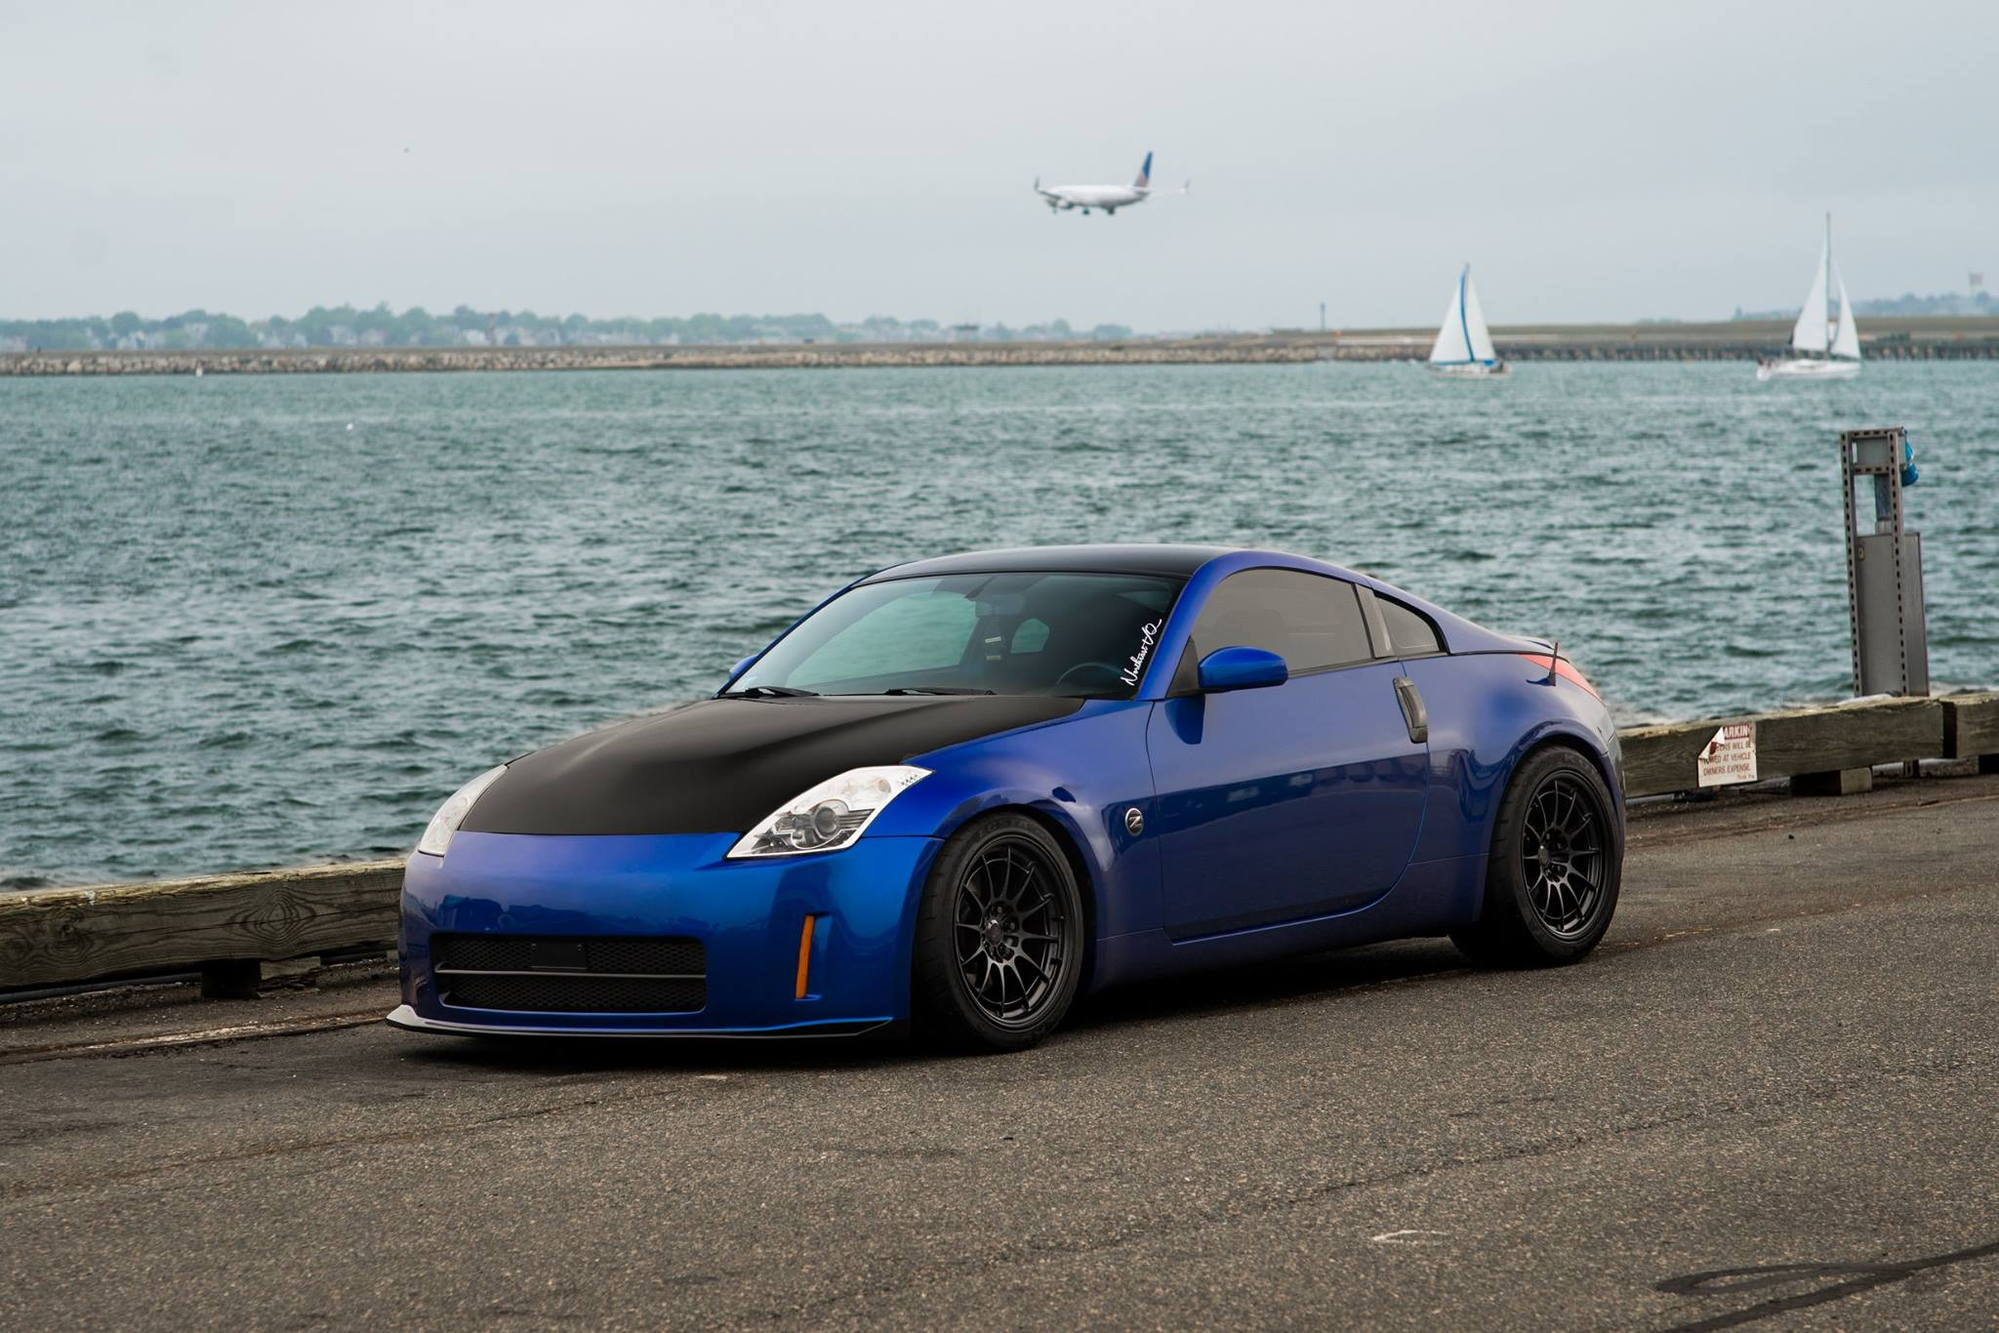 daytona blue page 60 my350z com nissan 350z and 370z forum discussion. Black Bedroom Furniture Sets. Home Design Ideas